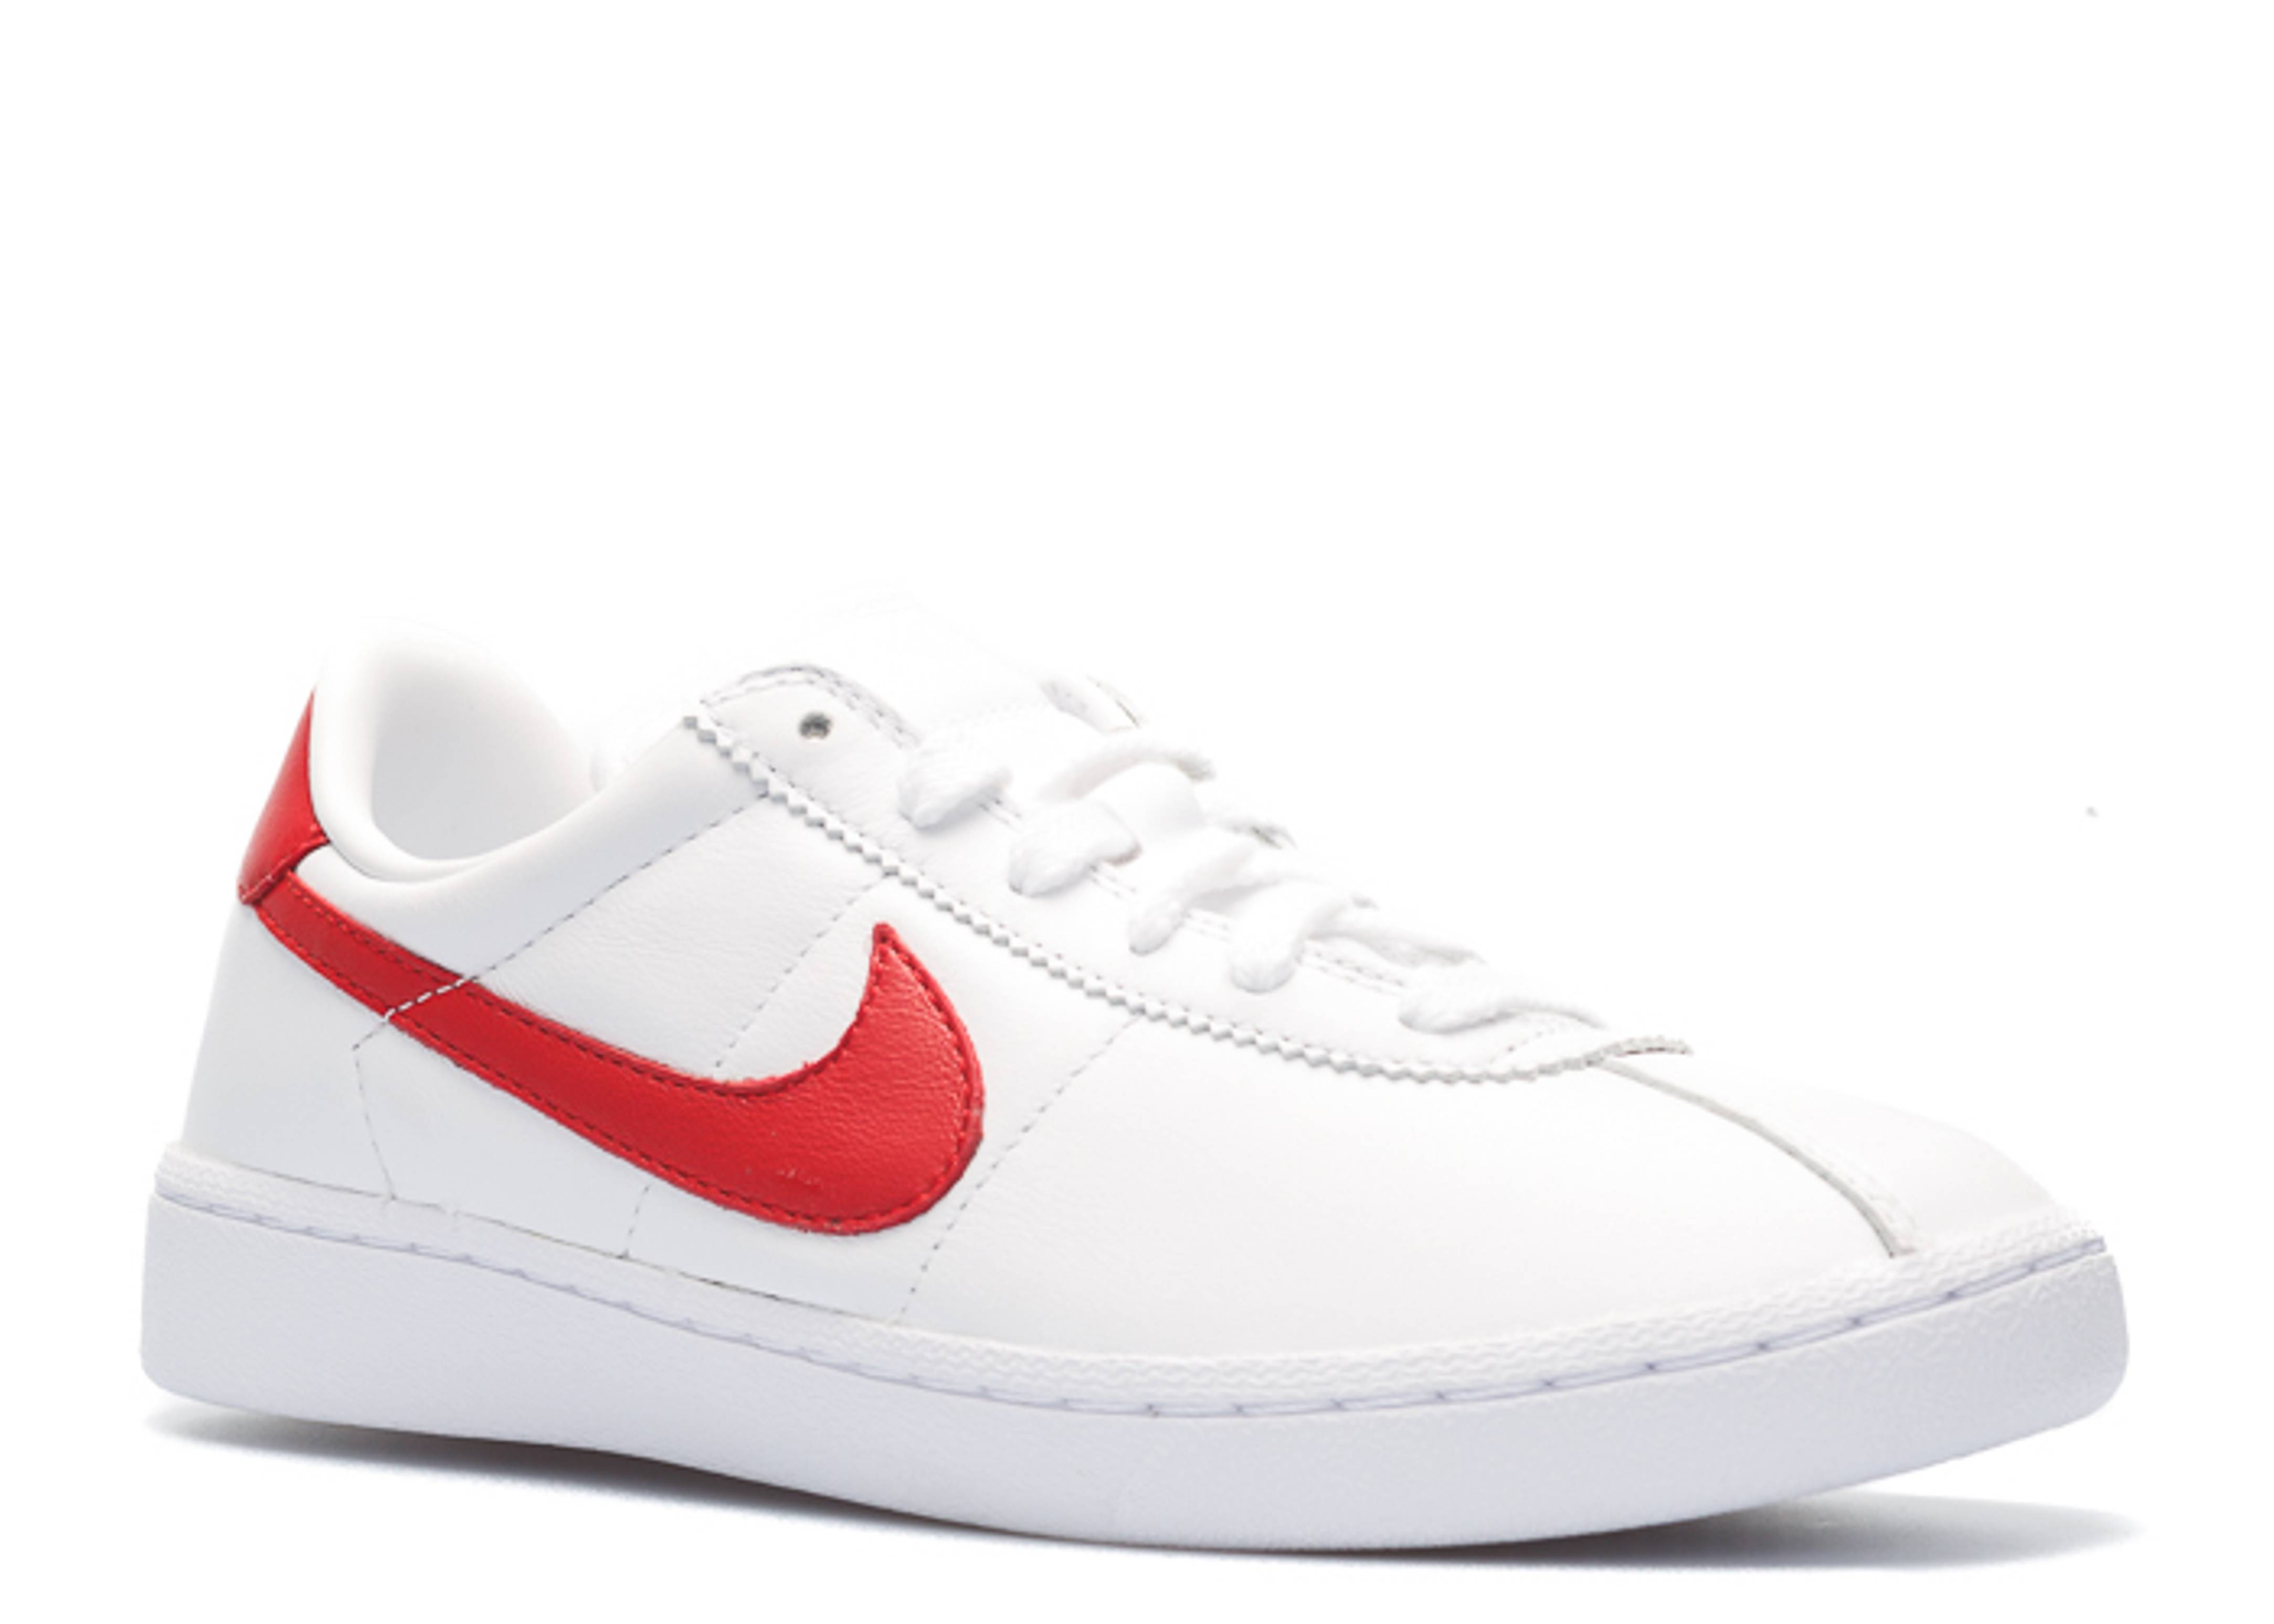 Leather Sneakers Bruin Nike Mcfly Marty Lab A54R3jqL